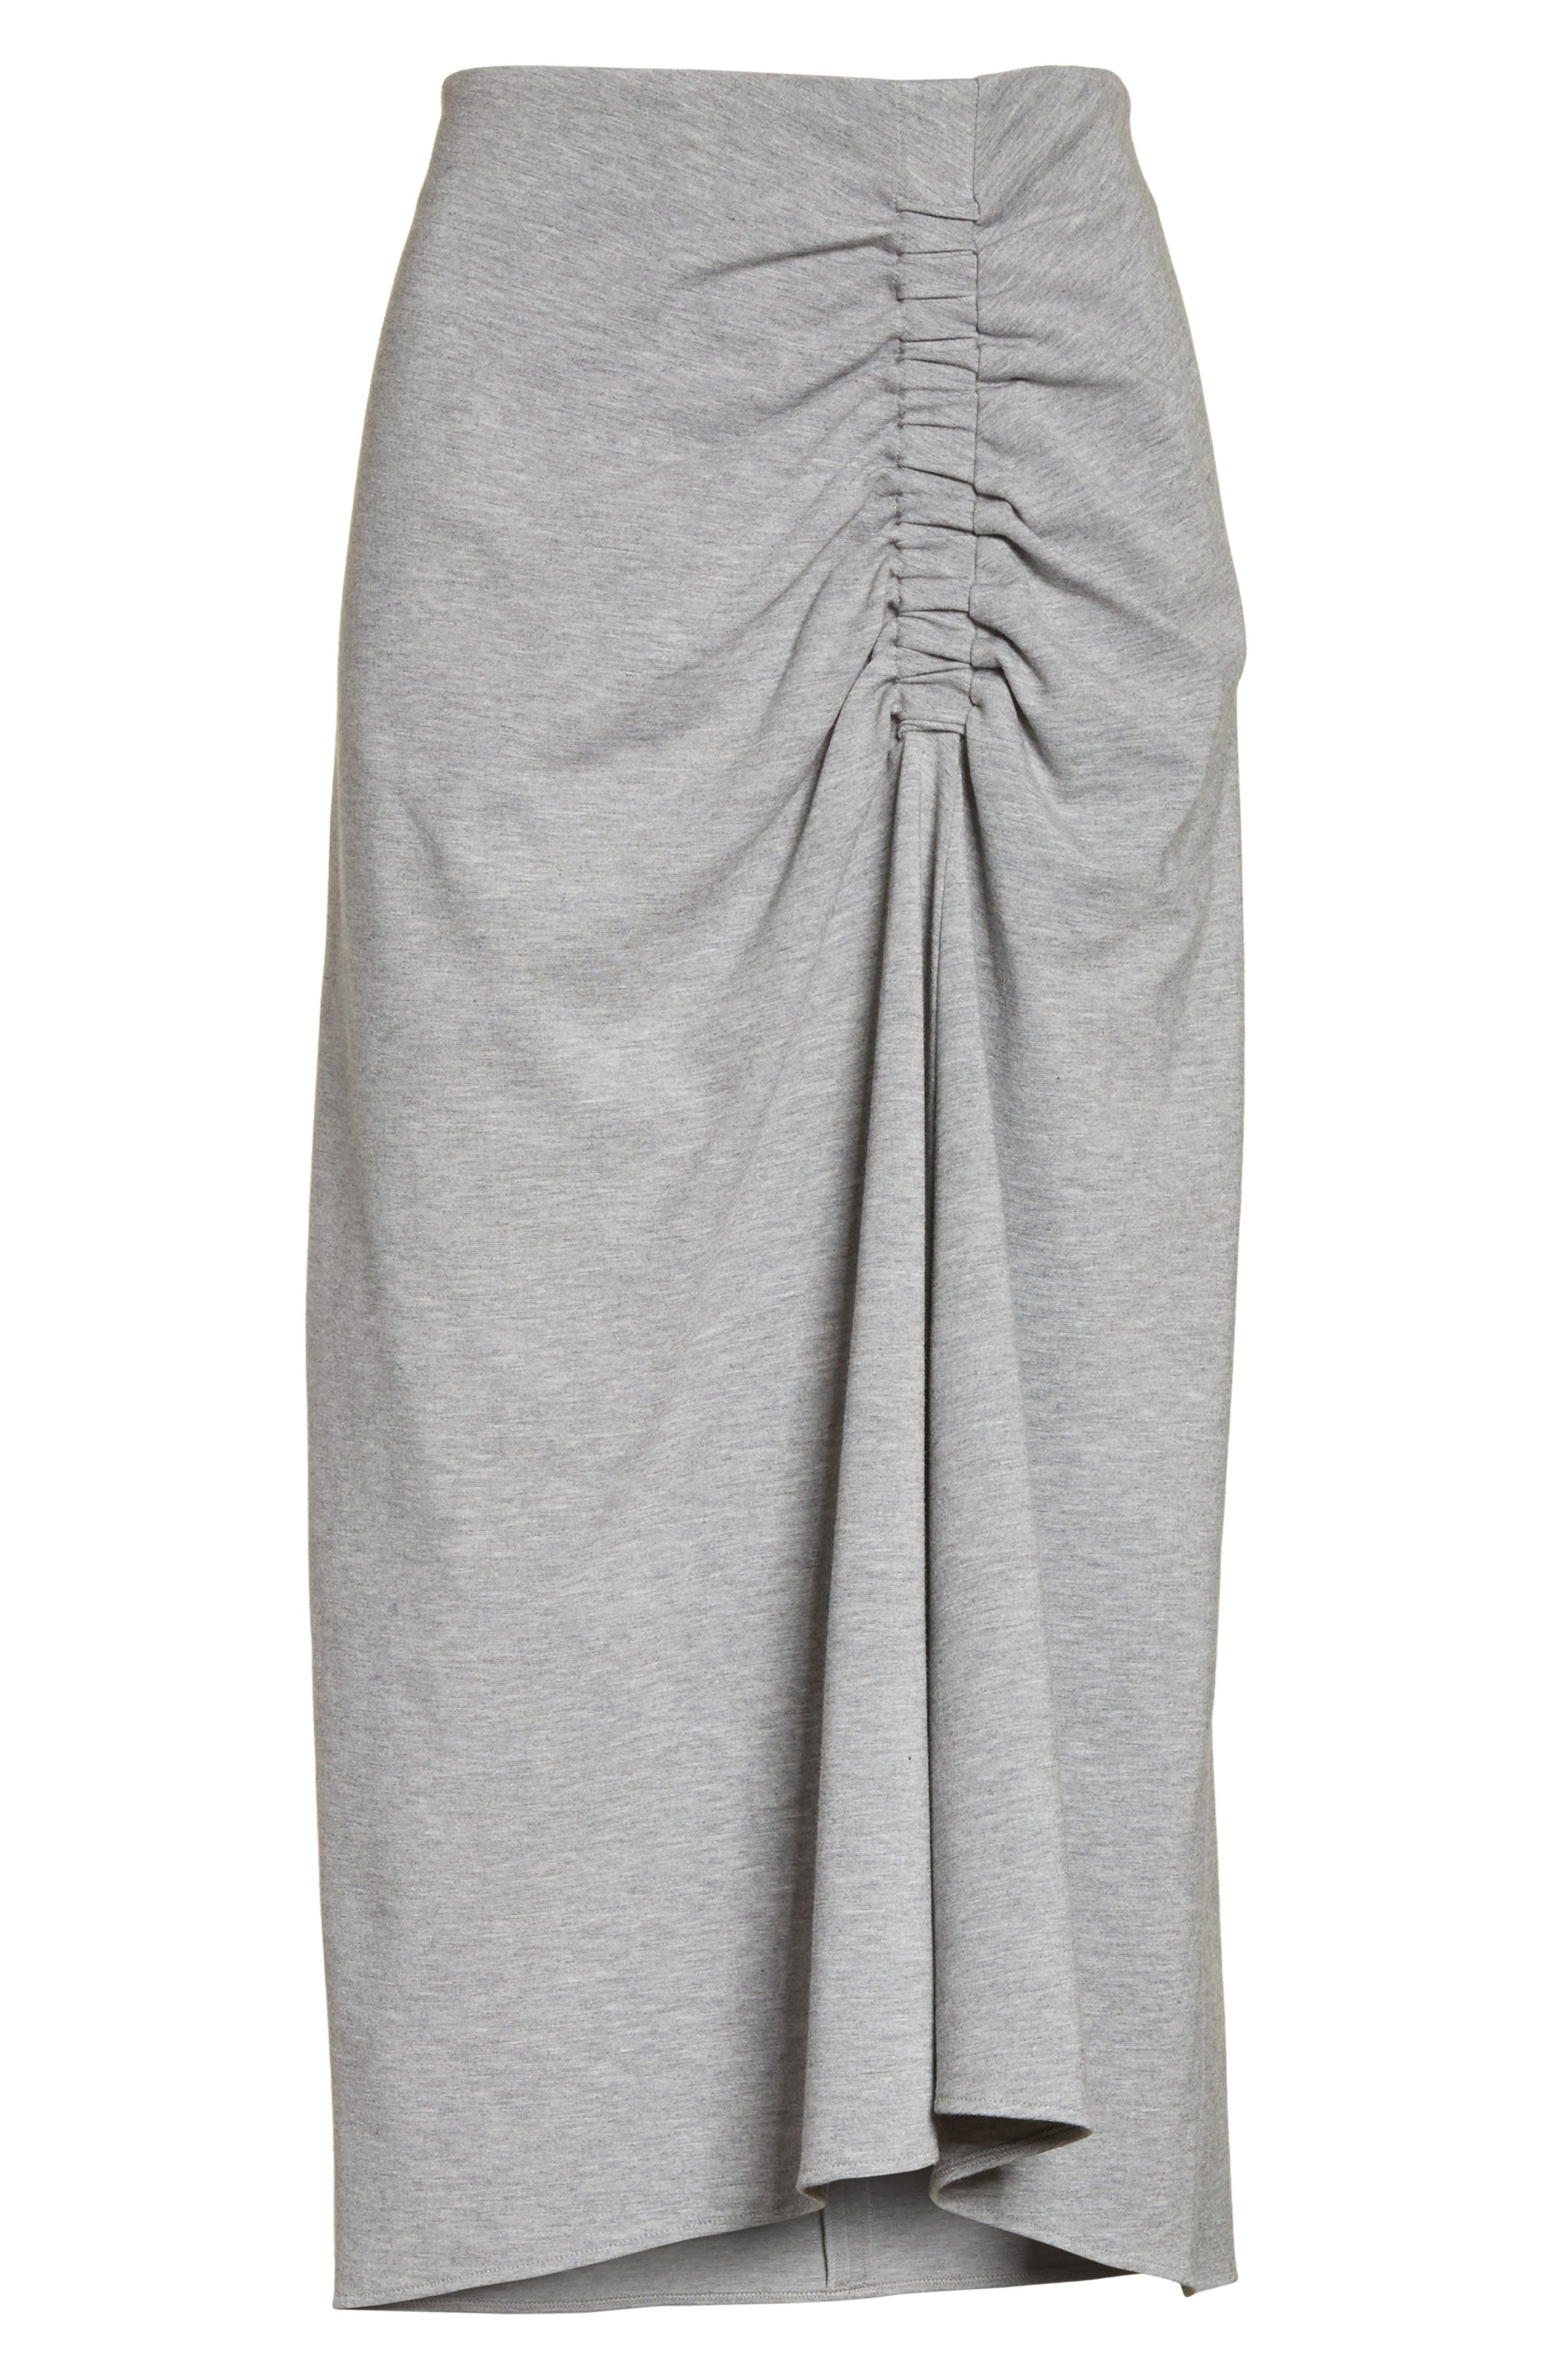 Ruched Midi Skirt,                             Alternate thumbnail 6, color,                             Heather Grey